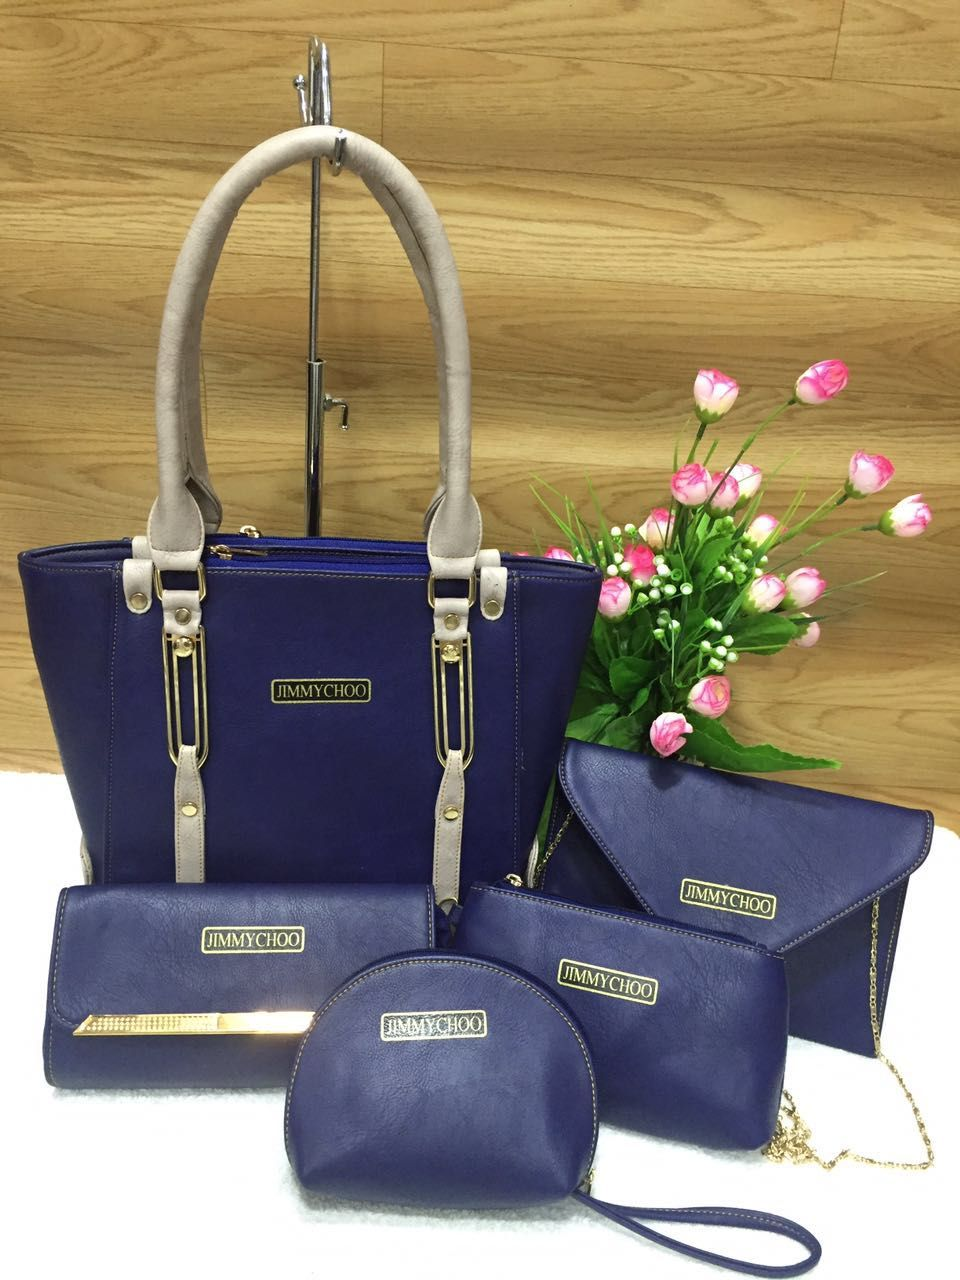 159dce967a Jimmy Choo - Combo of 5 bags, 8 Designs | Branded Products For Sale Call  /Whatsapp @ +919560214267.